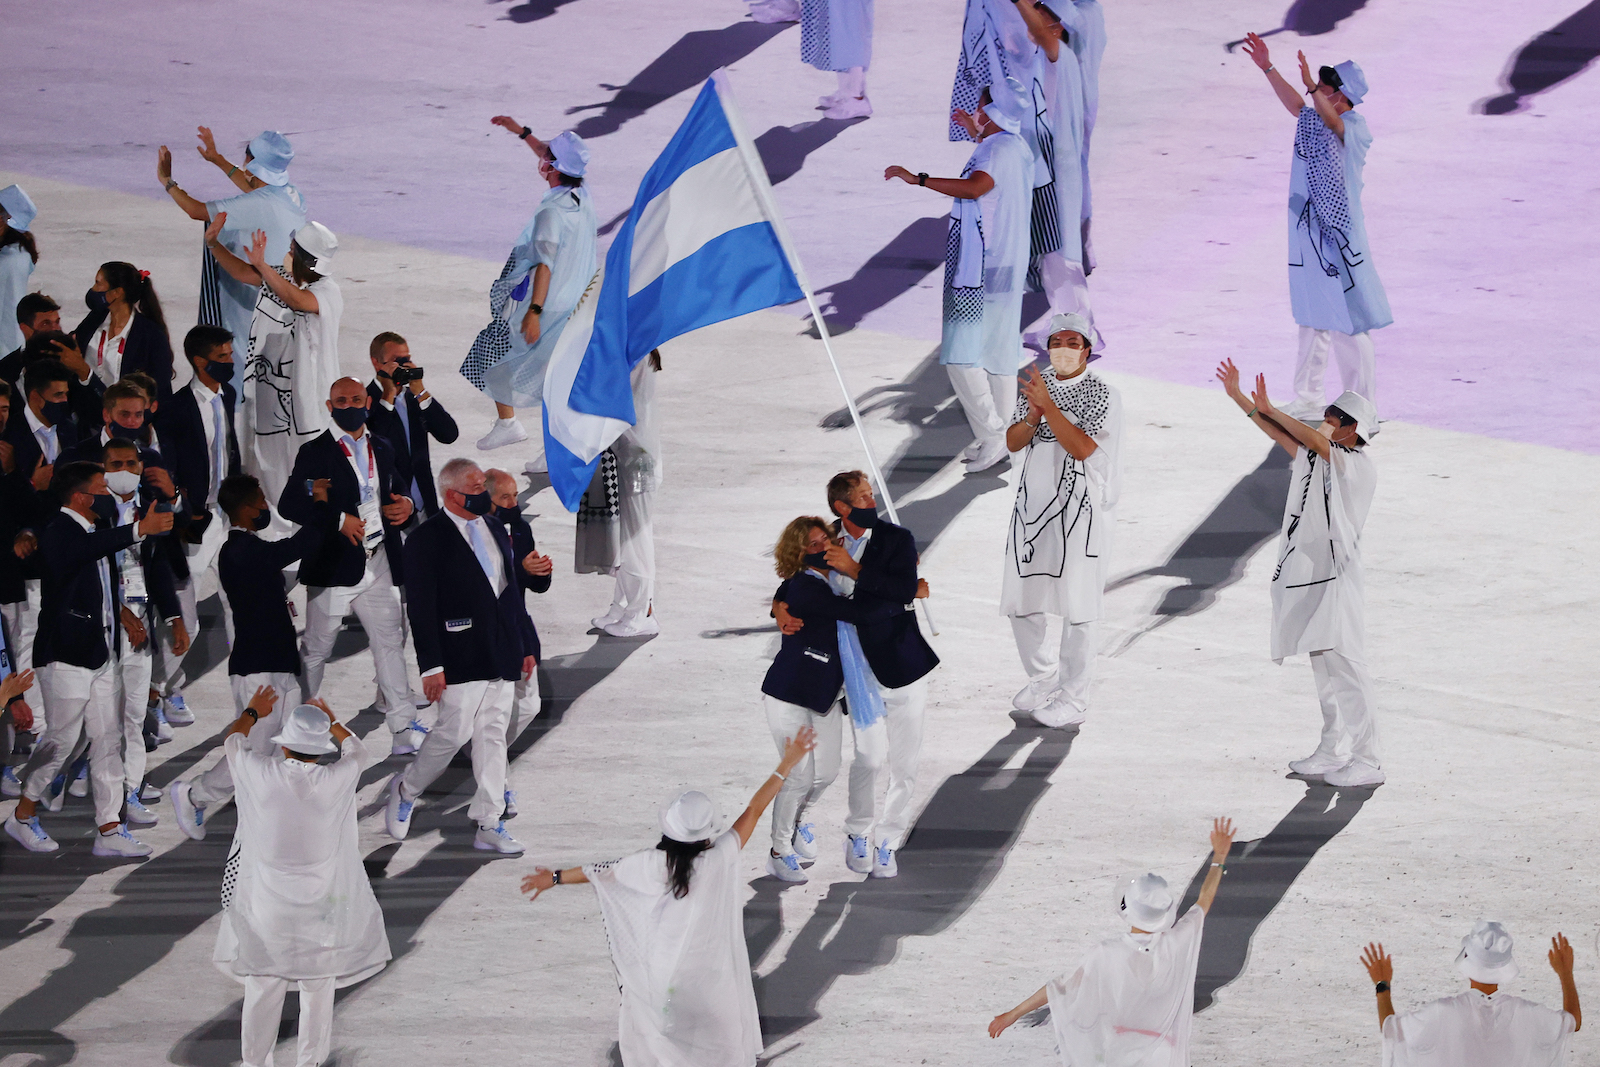 Tokyo 2020 Olympics - The Tokyo 2020 Olympics Opening Ceremony - Olympic Stadium, Tokyo, Japan - July 23, 2021.  Cecilia Carranza of Argentina and Santiago Lange of Argentina lead their contingent in the athletes parade during the opening ceremony REUTERS/Pilar Olivares - SP1EH7N0XQDPC